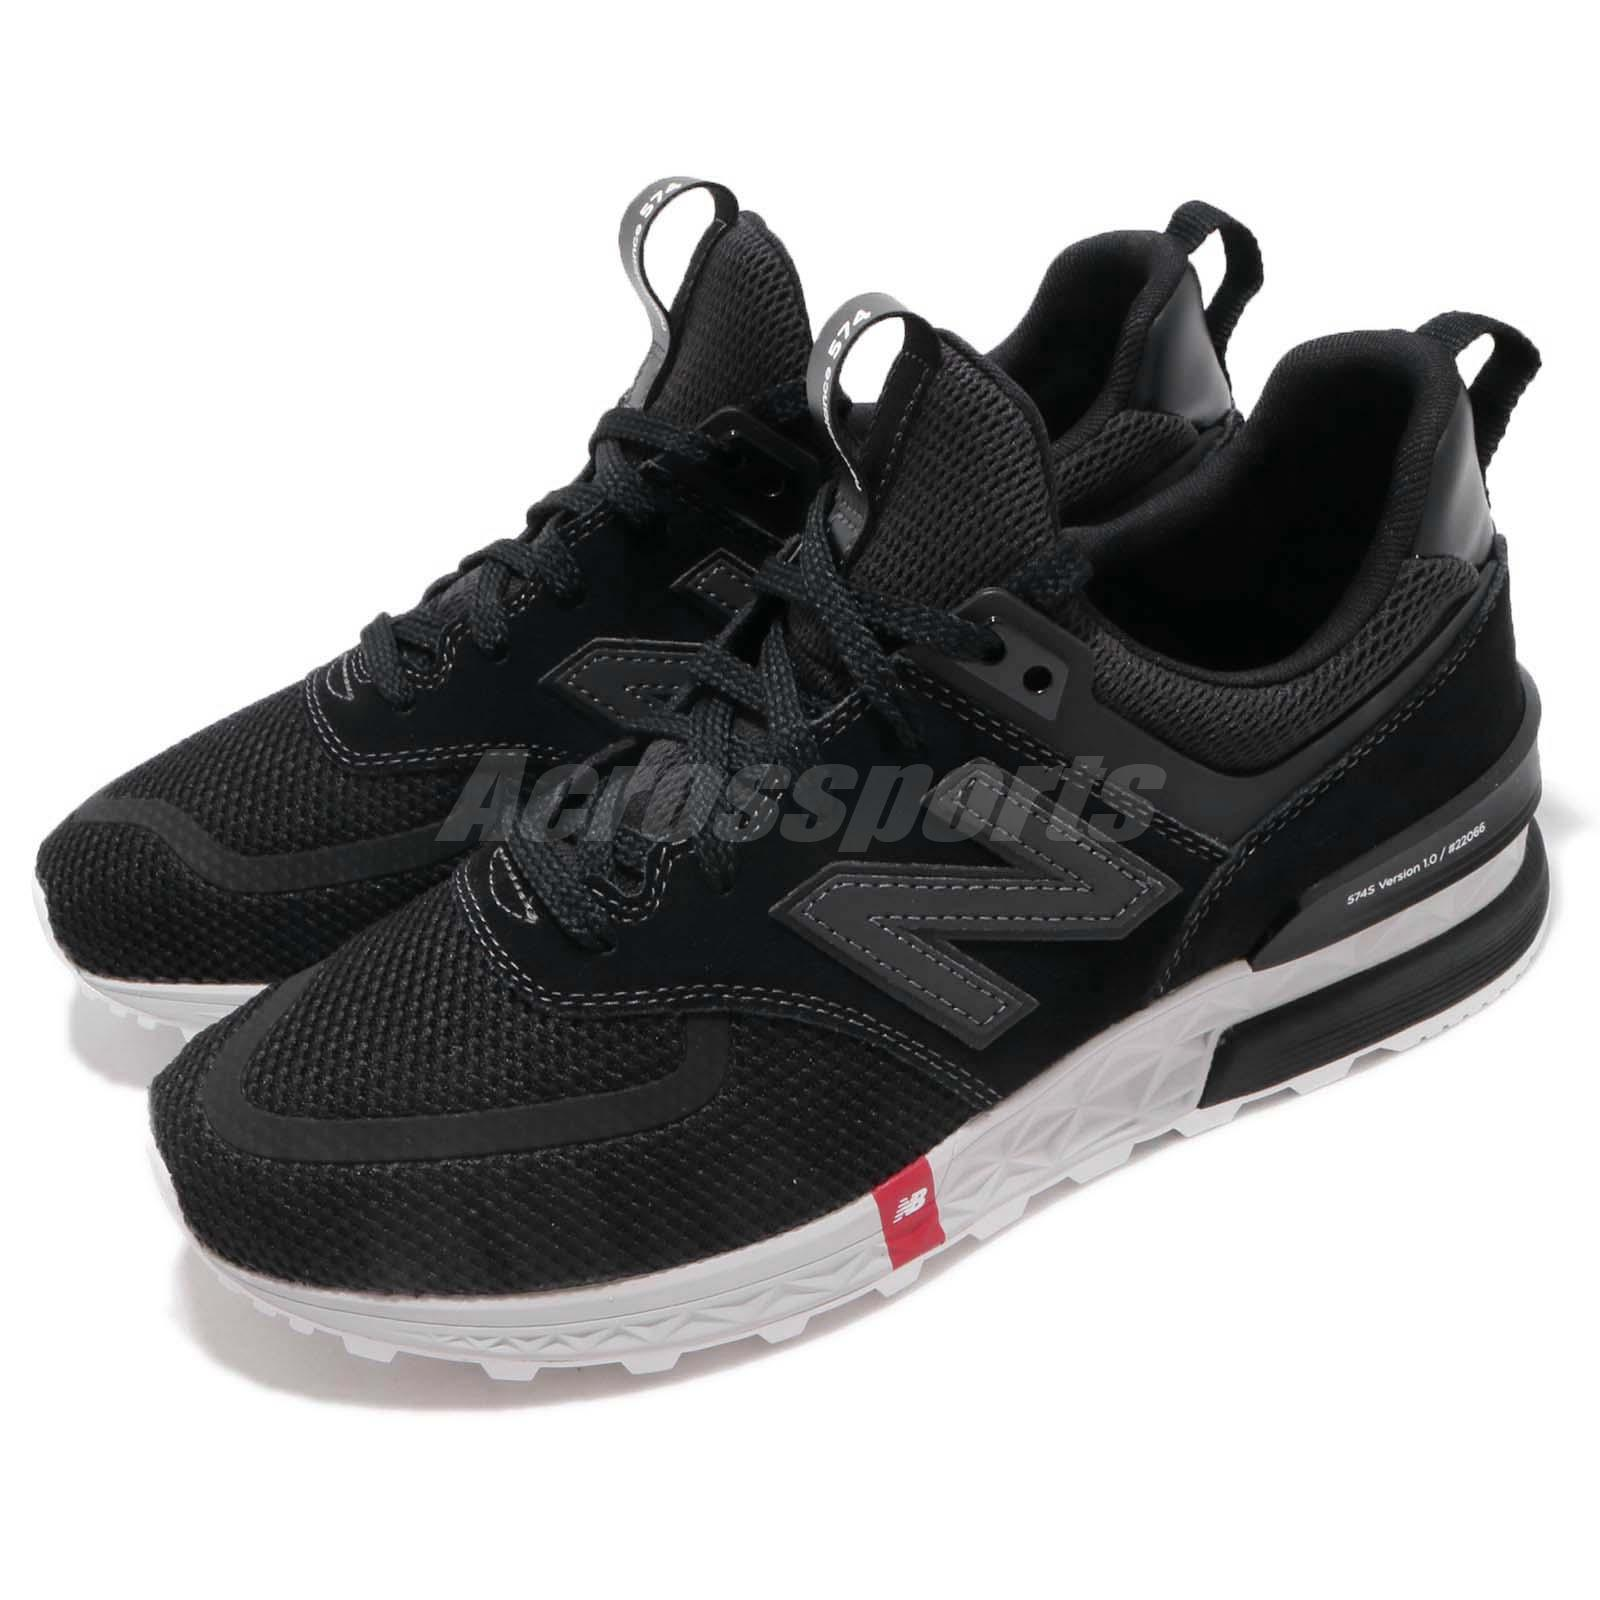 low cost 940ba c5787 Details about New Balance MS574UTB D Black Grey Red Men Running Shoes  Sneakers MS574UTBD